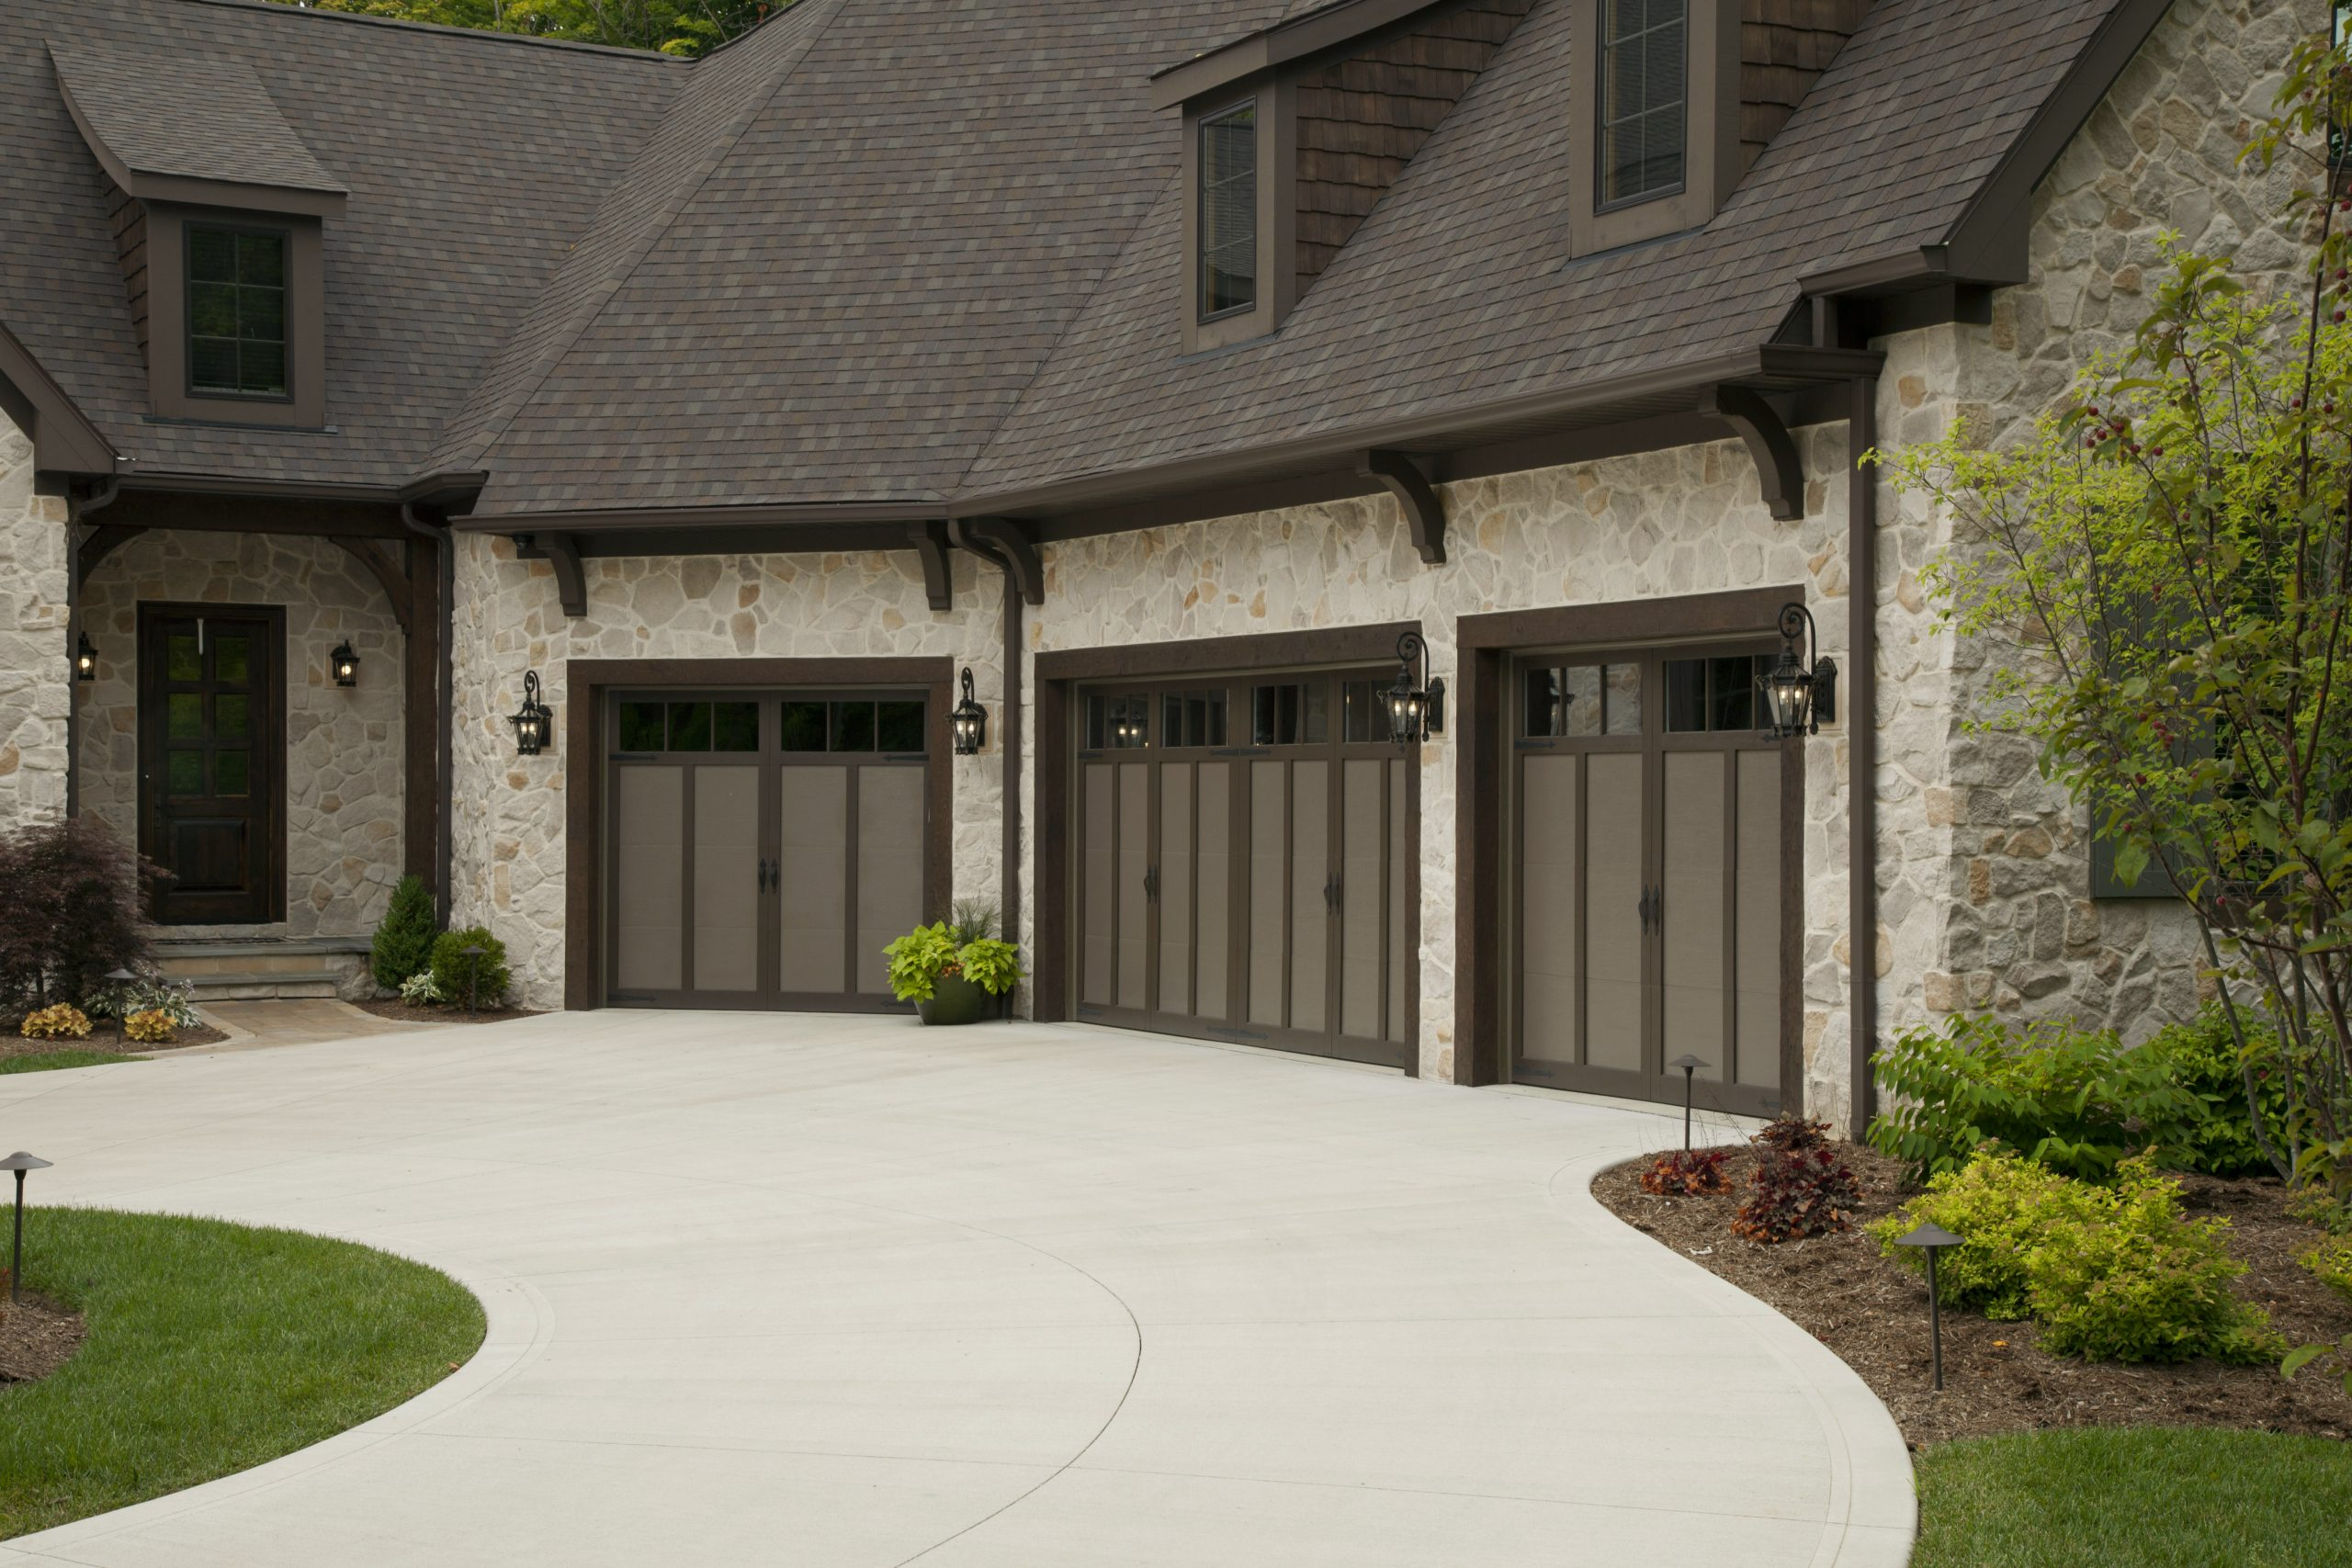 American Tradition garage doors